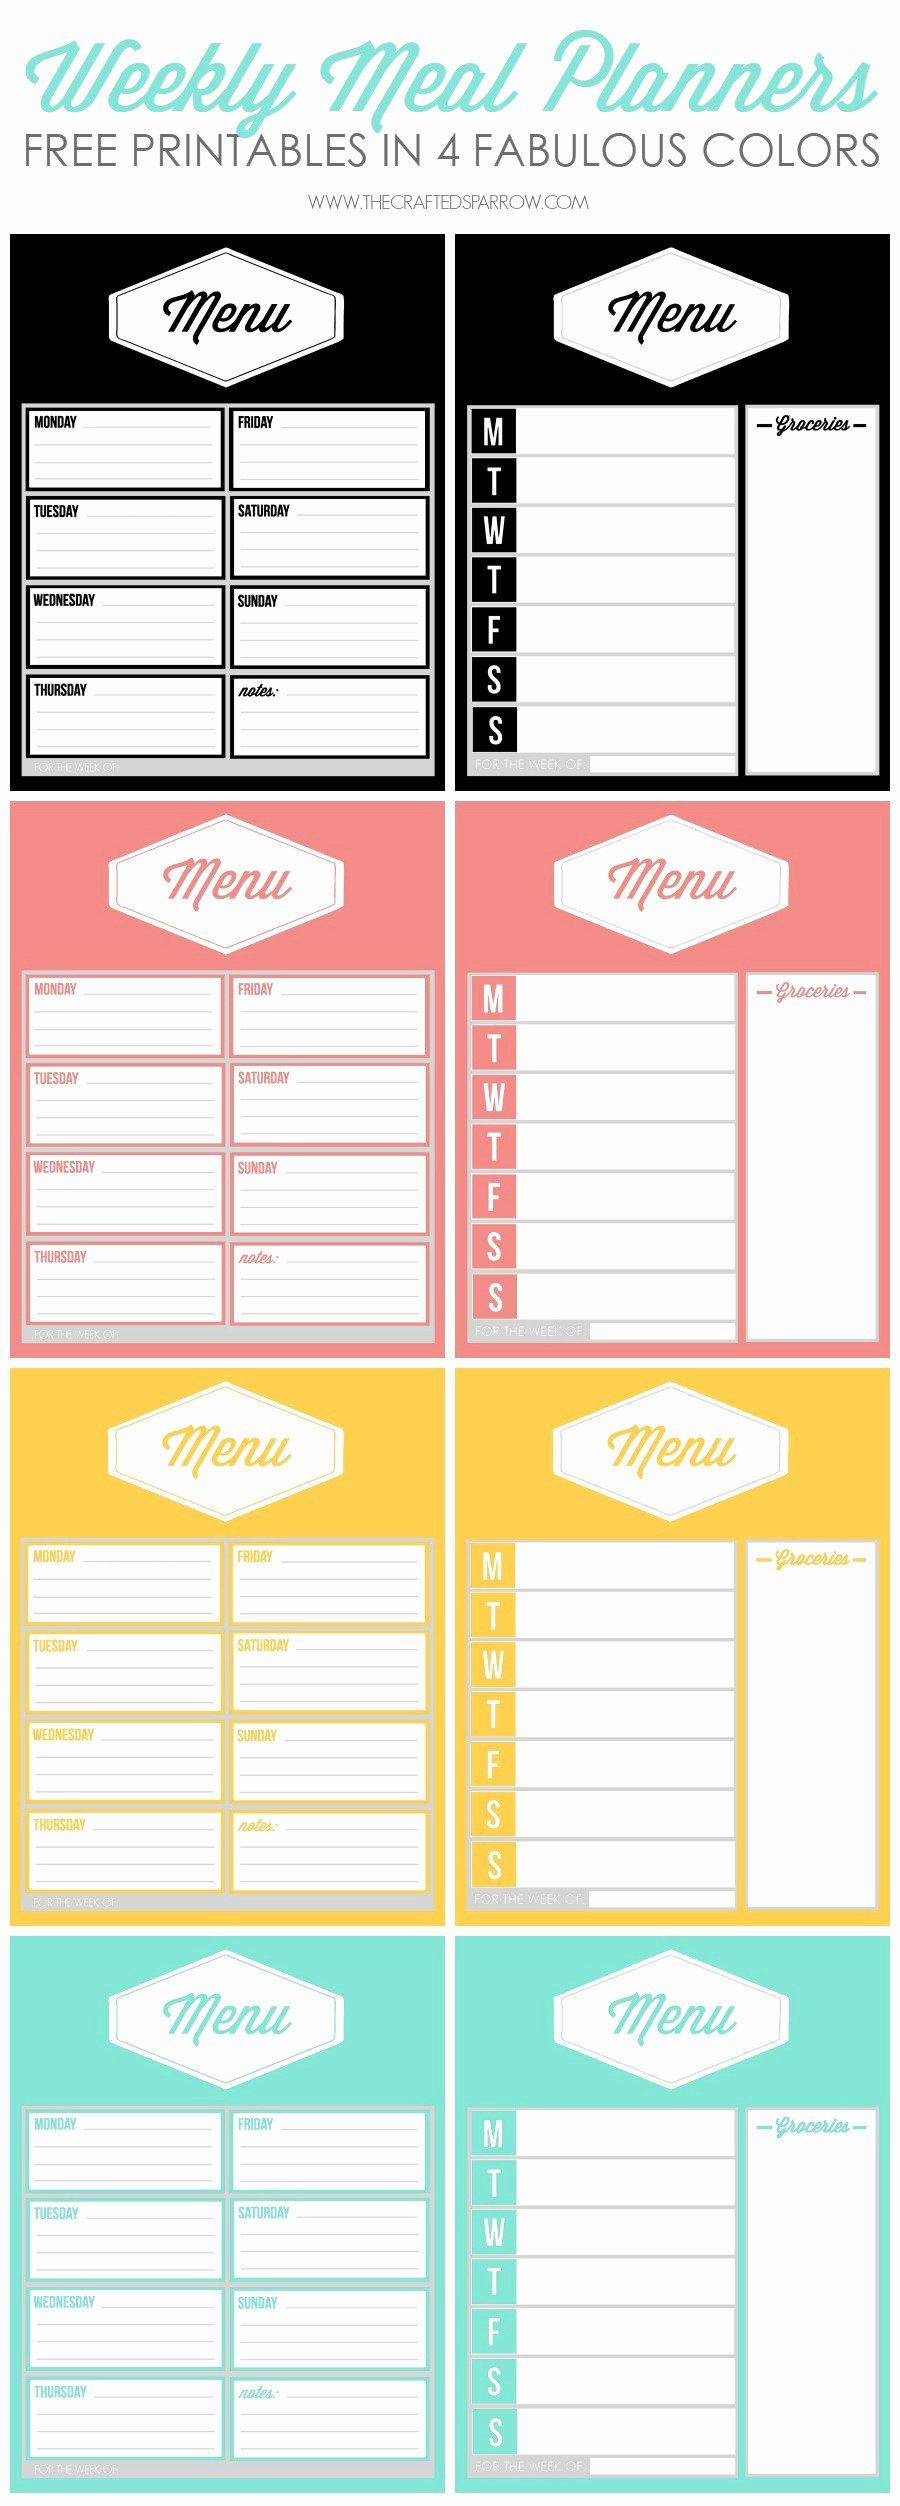 Weekly Meal Planning Template Inspirational Free Printable Weekly Meal Planners